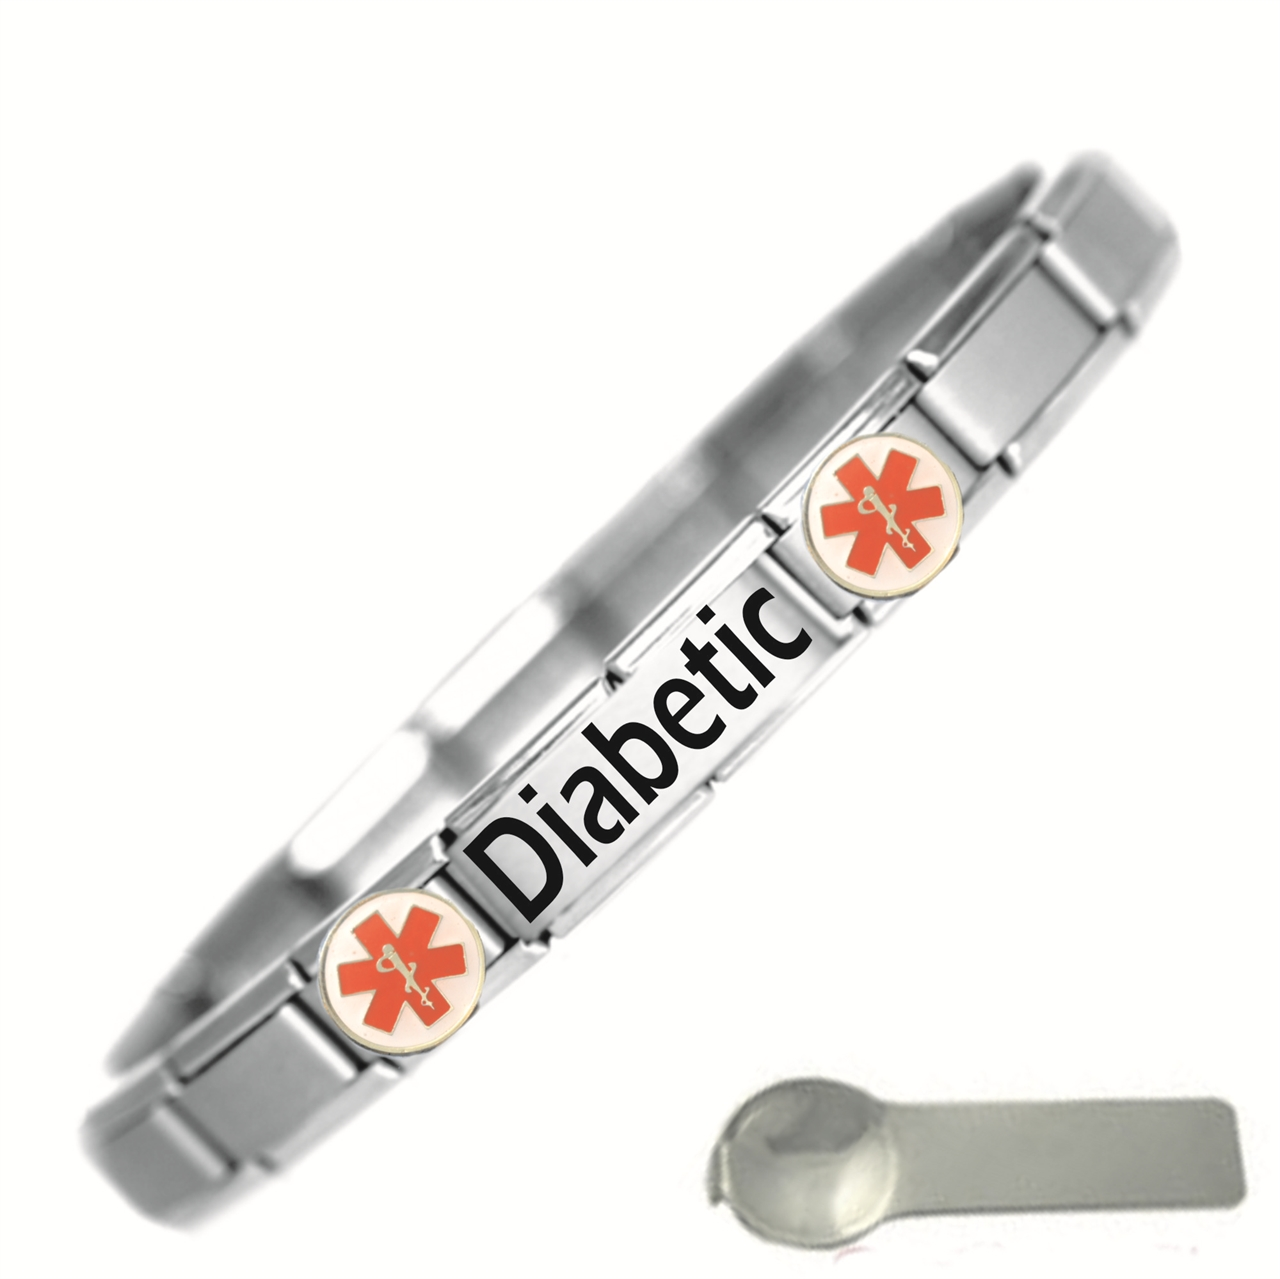 amazon glamorous cool and jewelry steel majestic with medicalert com inspiration seizure decoration wristbands stylish vibrant idea multiple sclerosis medical marvelous coolmedid stainless bracelet ideas emblem id centerpieces orange inches